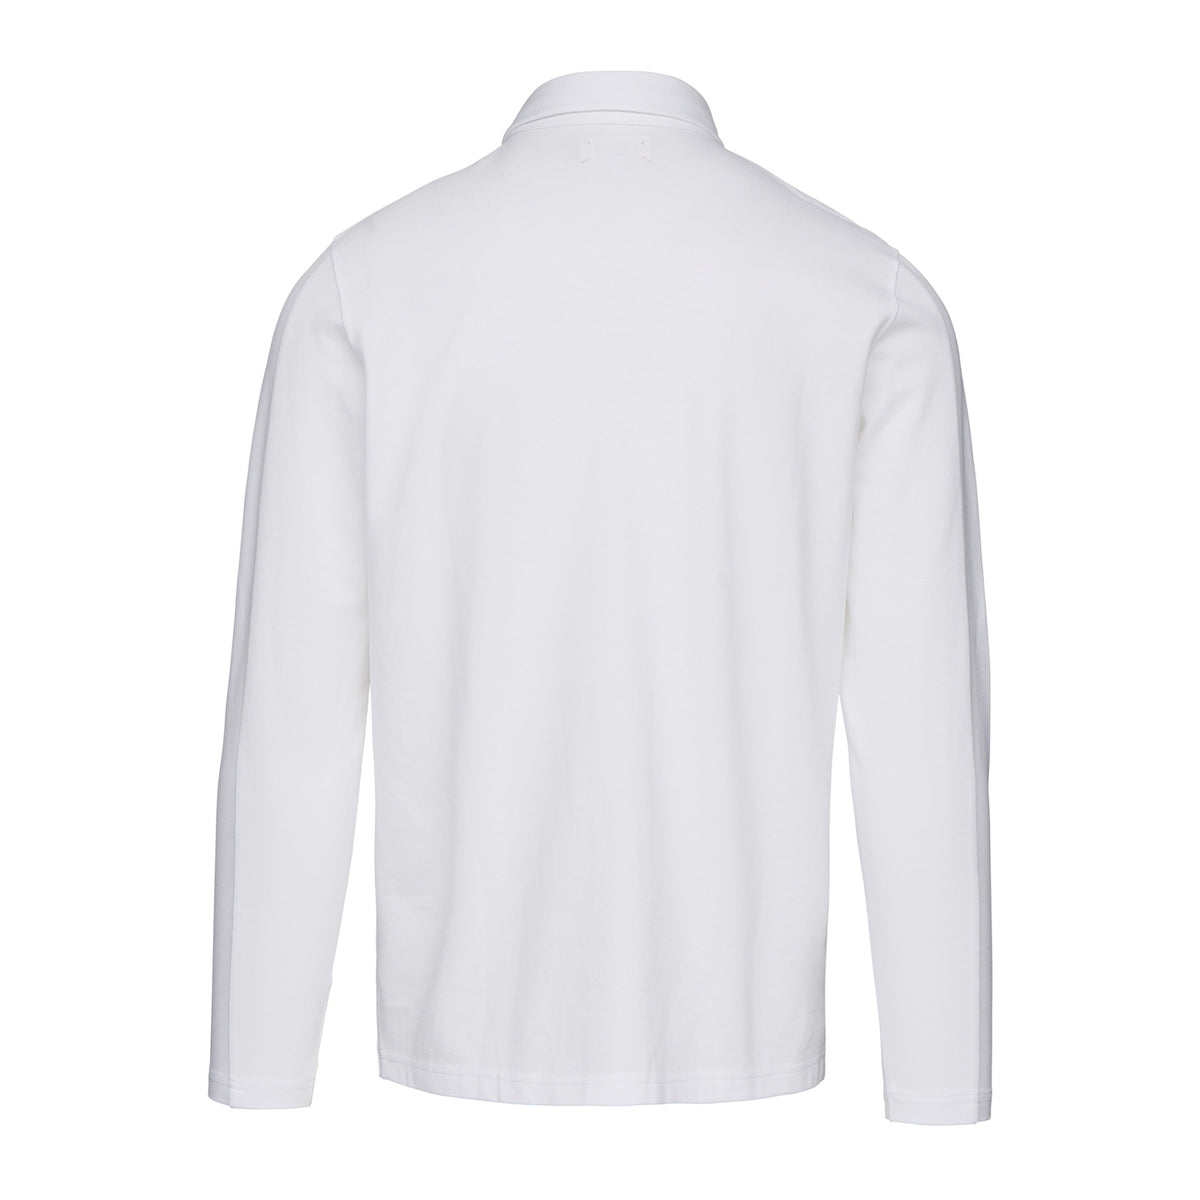 Breeze Jersey Shirt - background::white,variant::White